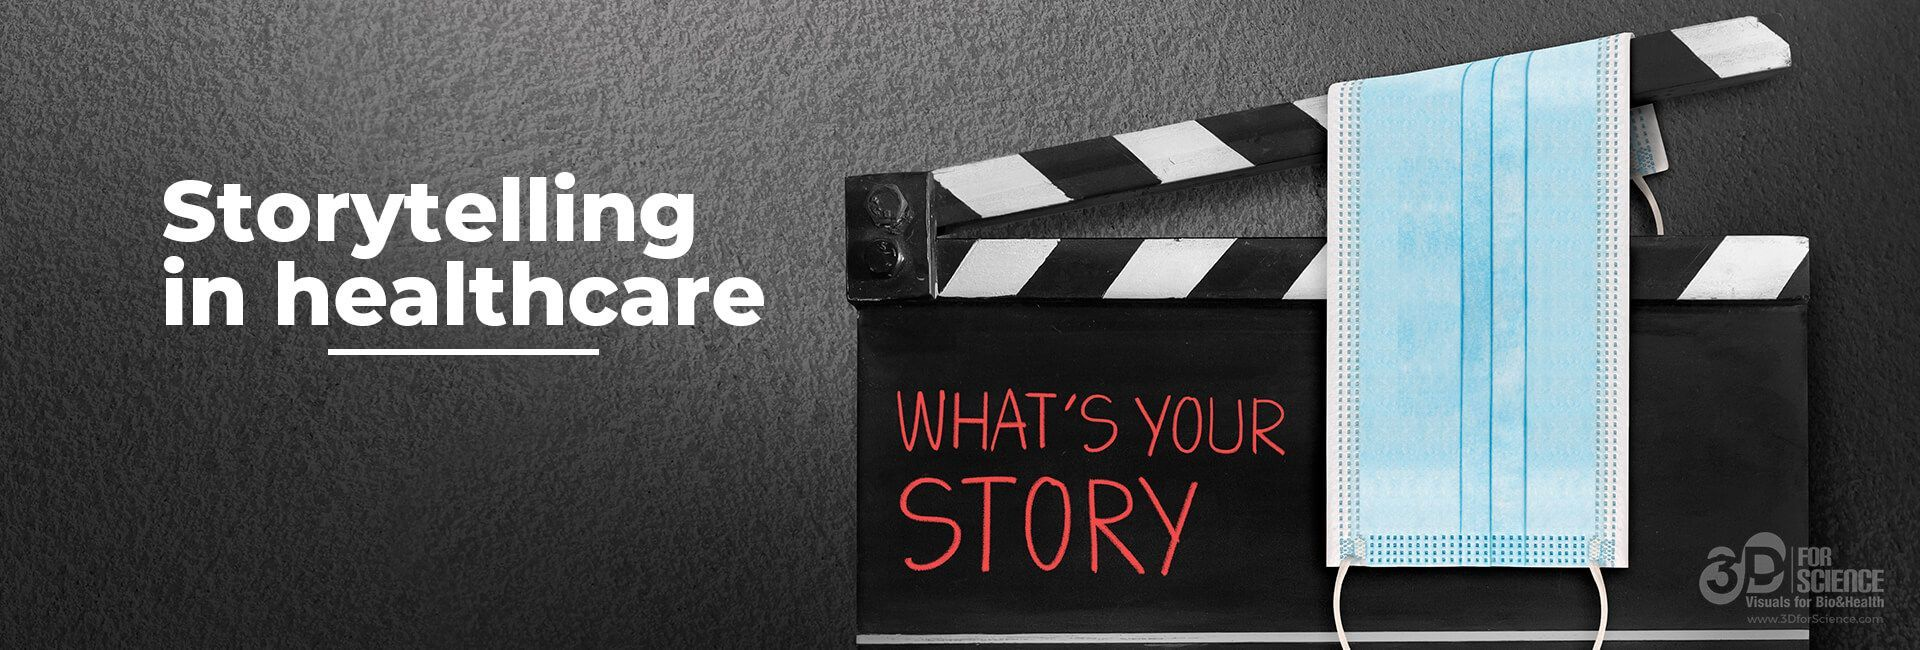 poster of a storytelling in healthcare